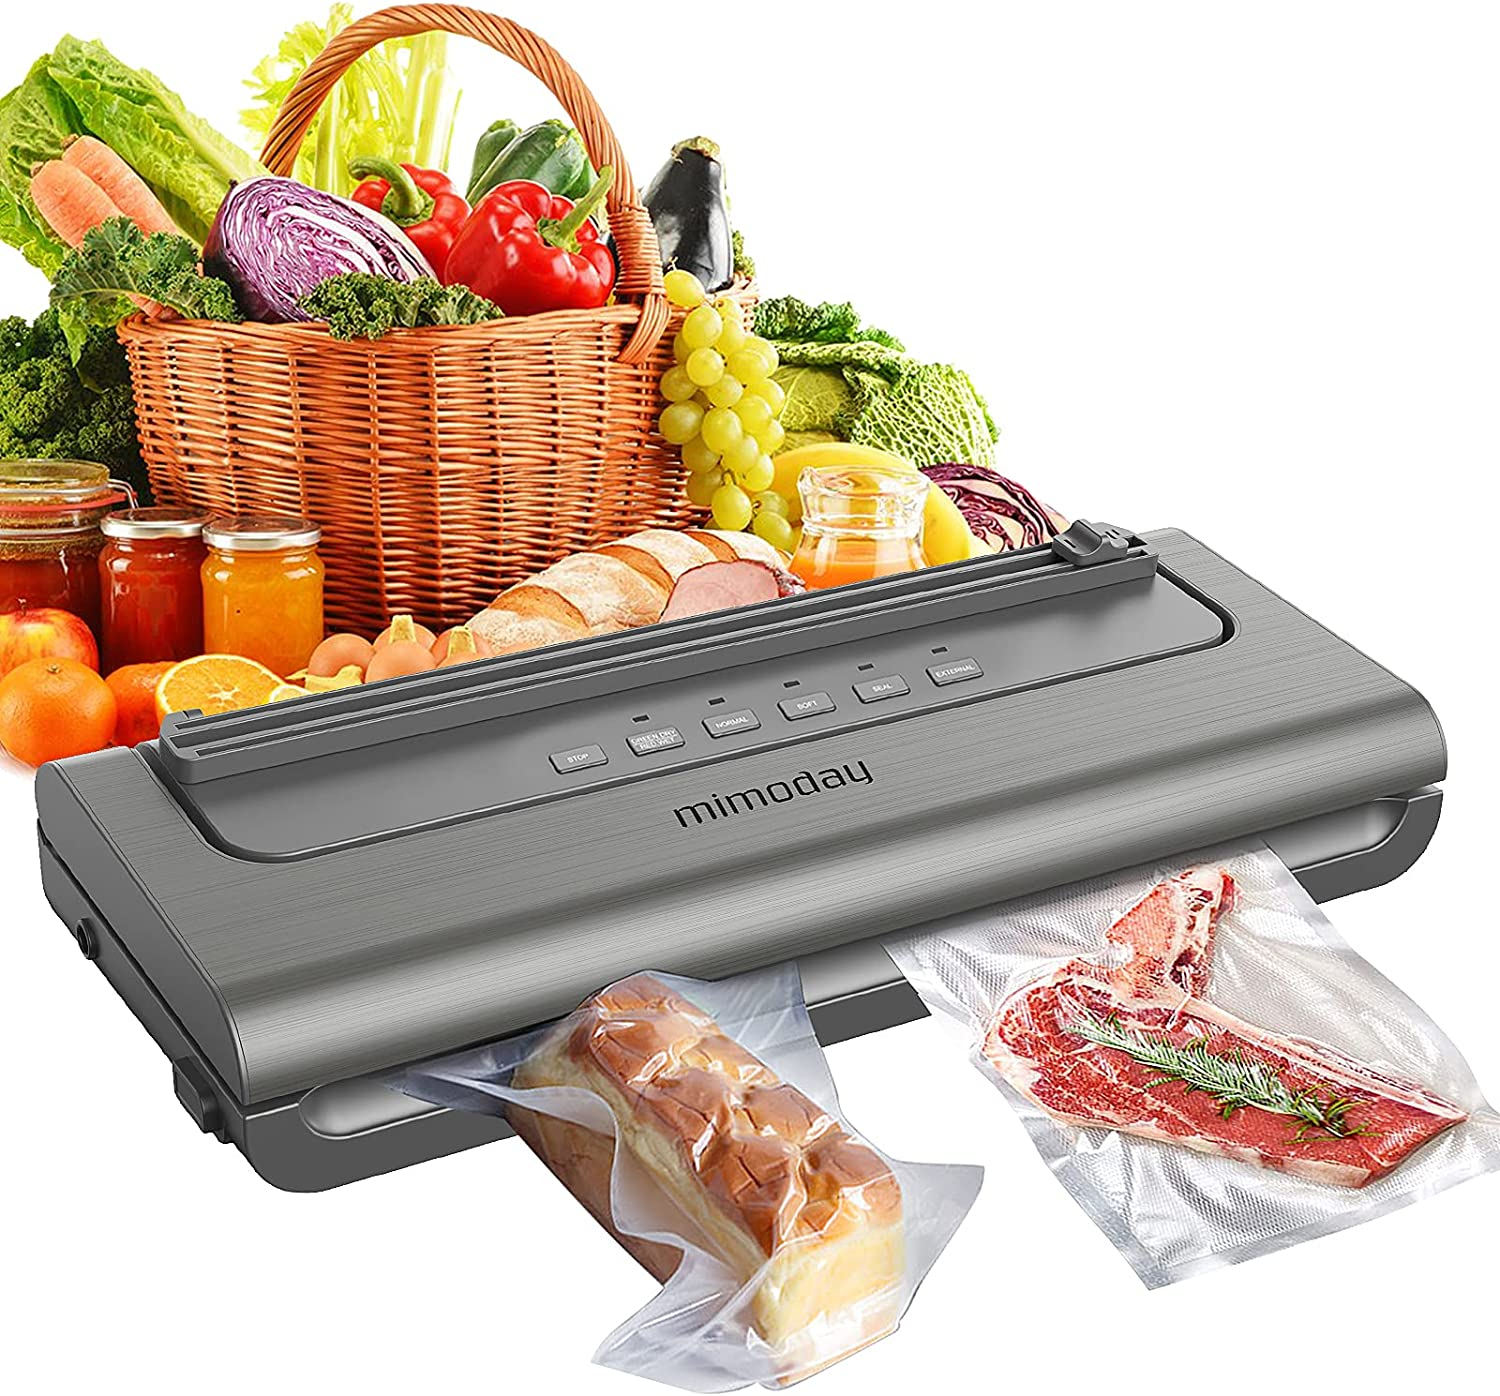 Vacuum Sealer Machine for Food Saver, Brushed Satin Vacuum Food Sealer w/Built-in Cutter, 30 Bags & Starter Kit, Dry&Wet&Normal&Soft&Seal& External Mode, Automatic, Compact Design, Mystic Silver